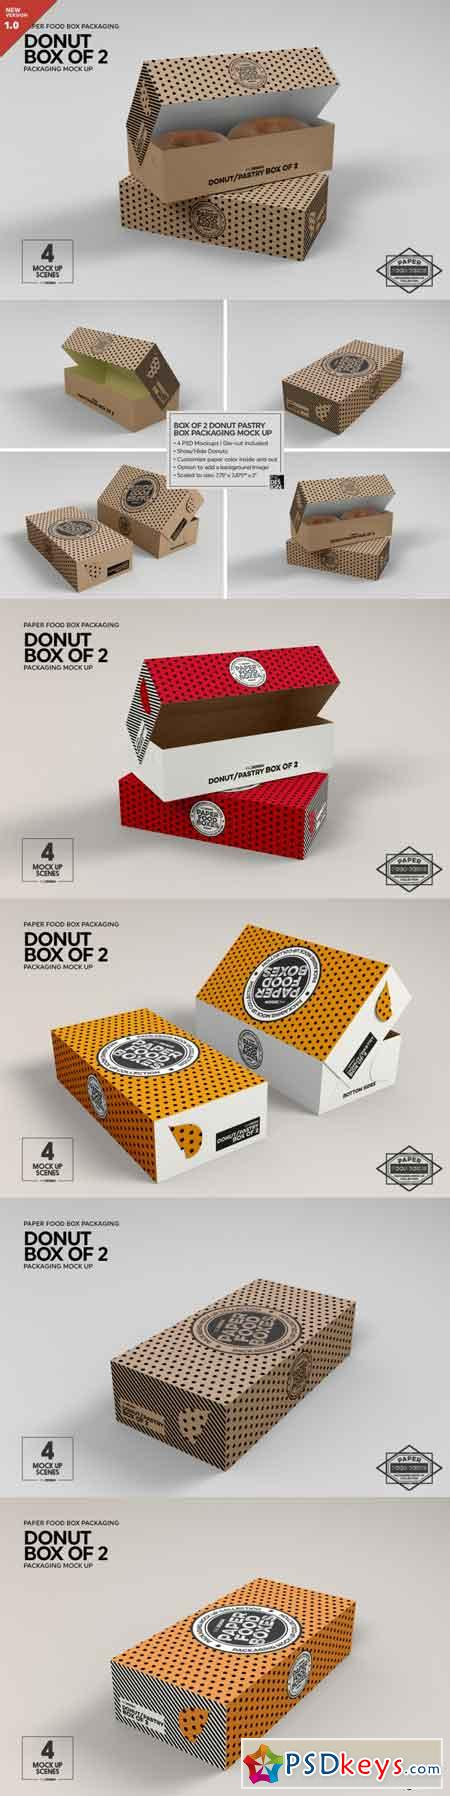 Box of Two Donut Pastry Box Mockup 3485014